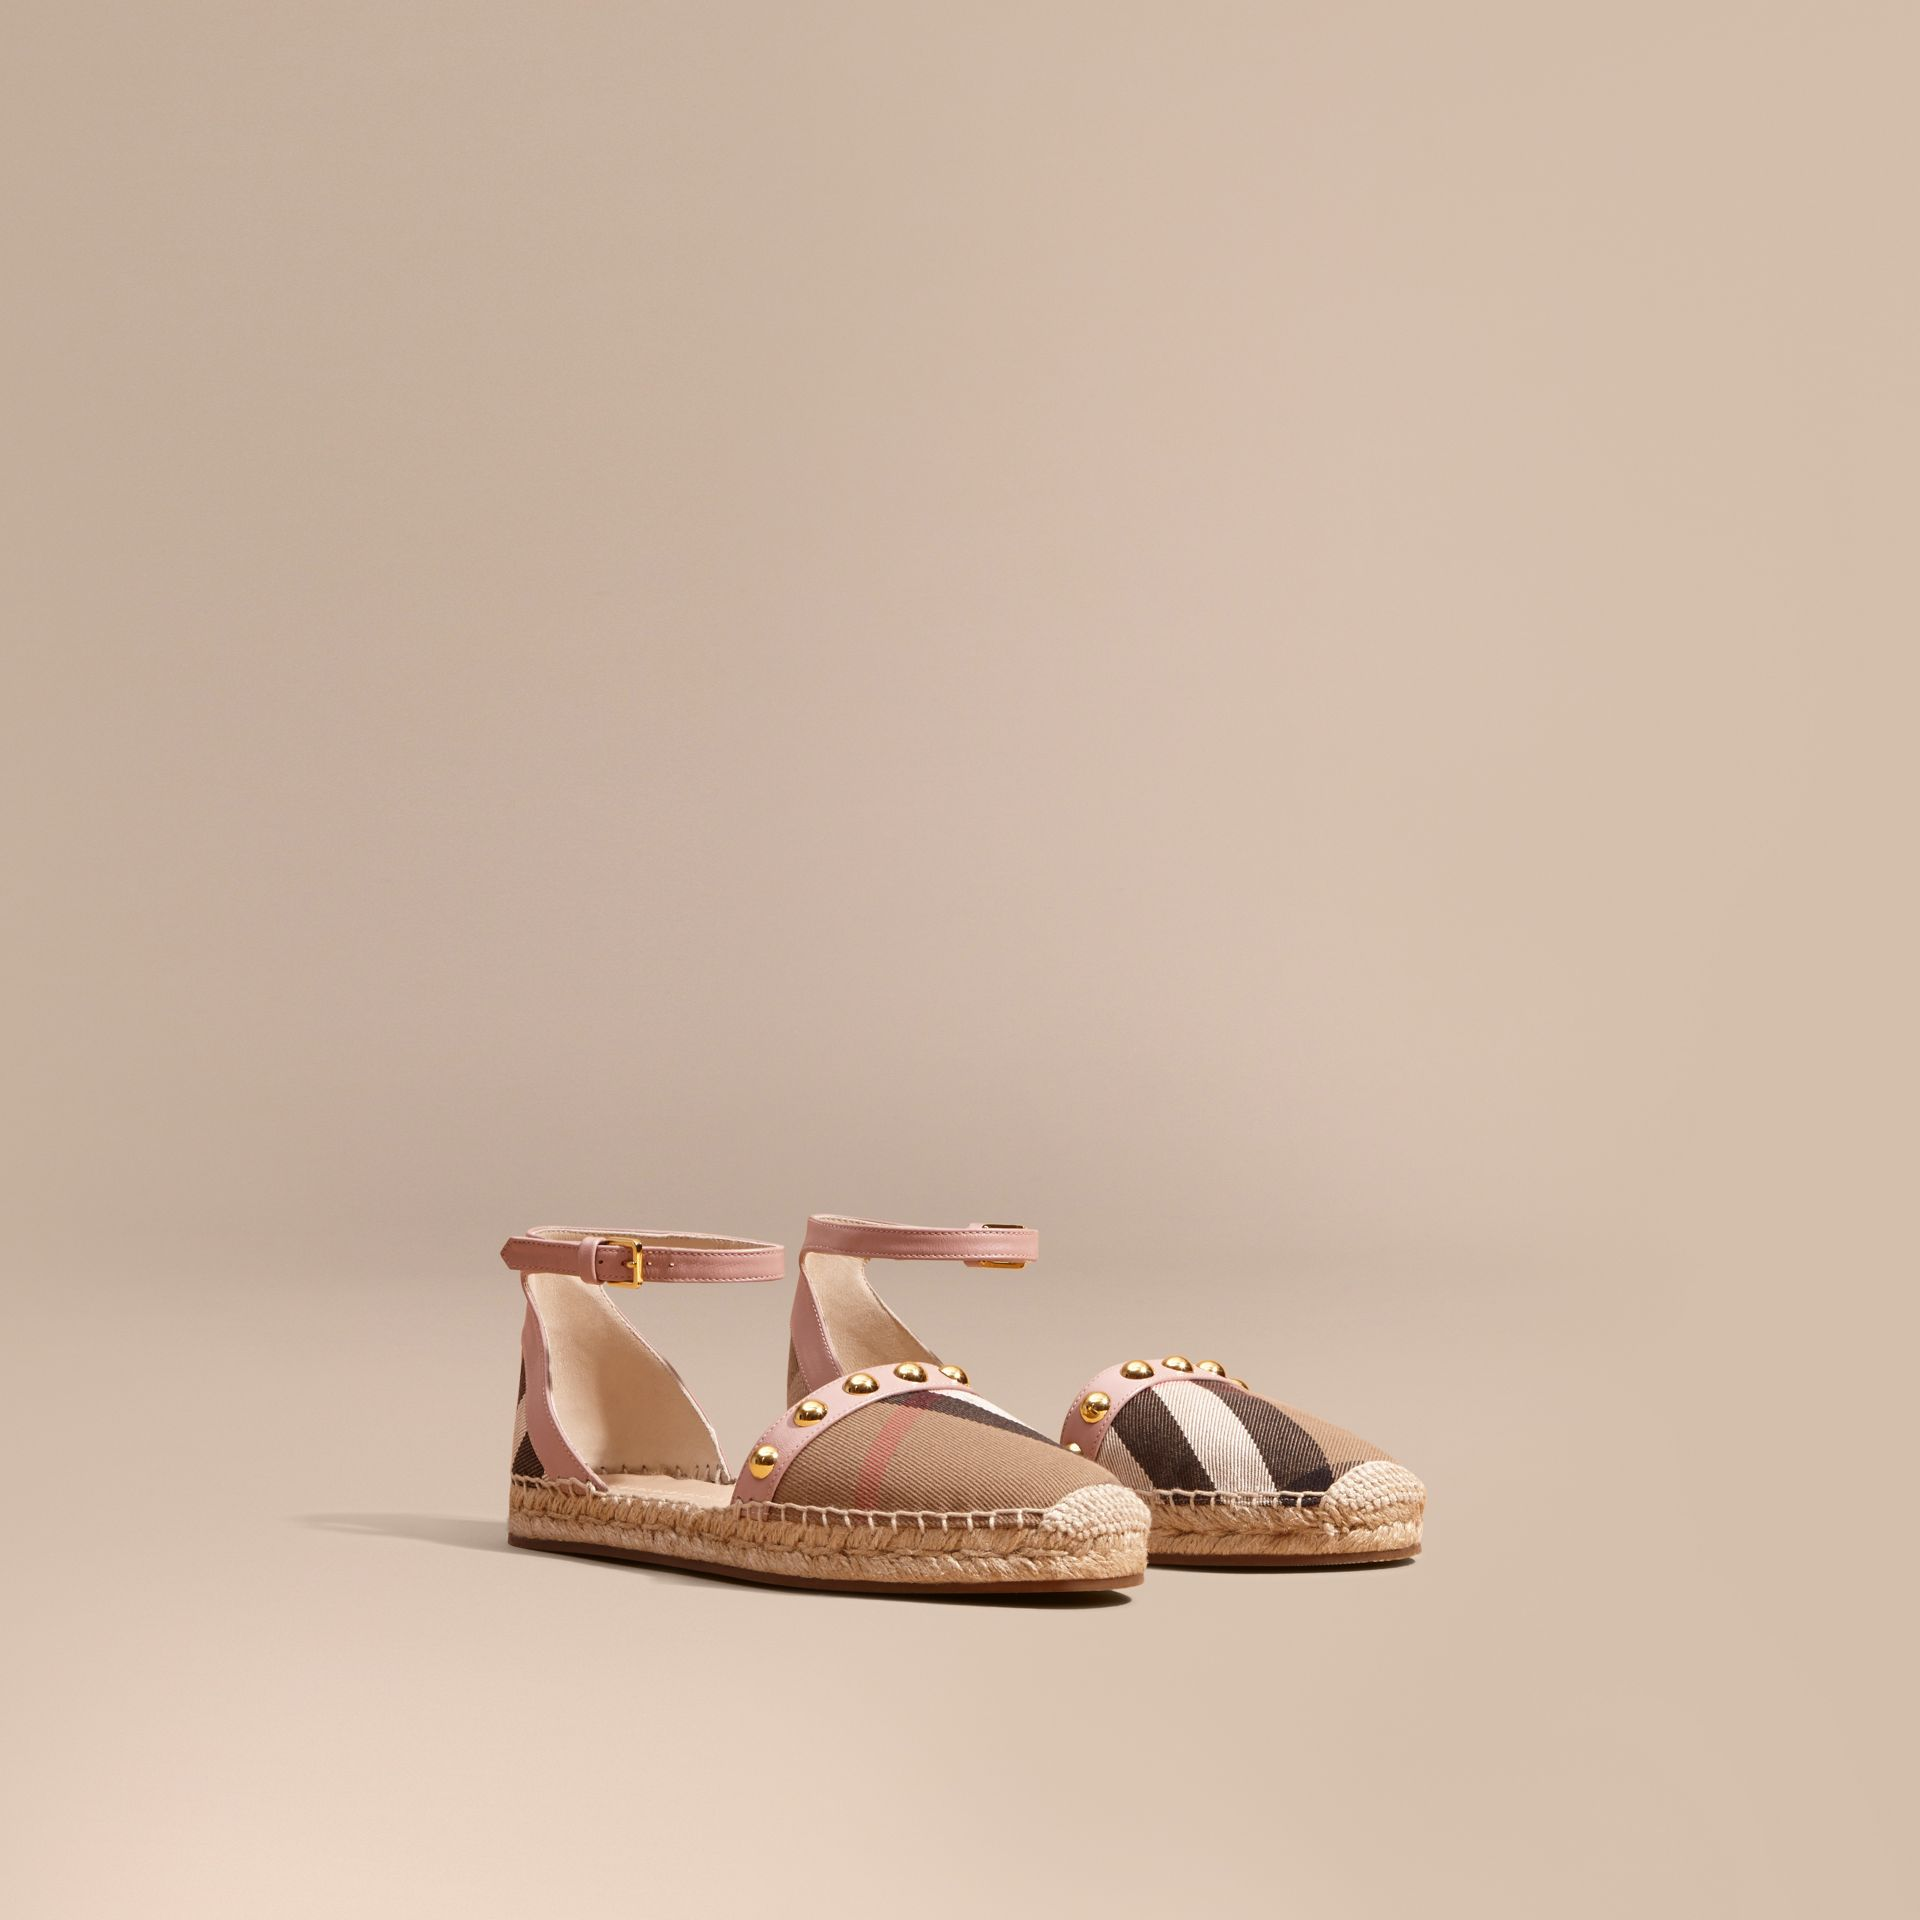 Nude blush Studded Leather and House Check Espadrille Sandals Nude Blush - gallery image 1